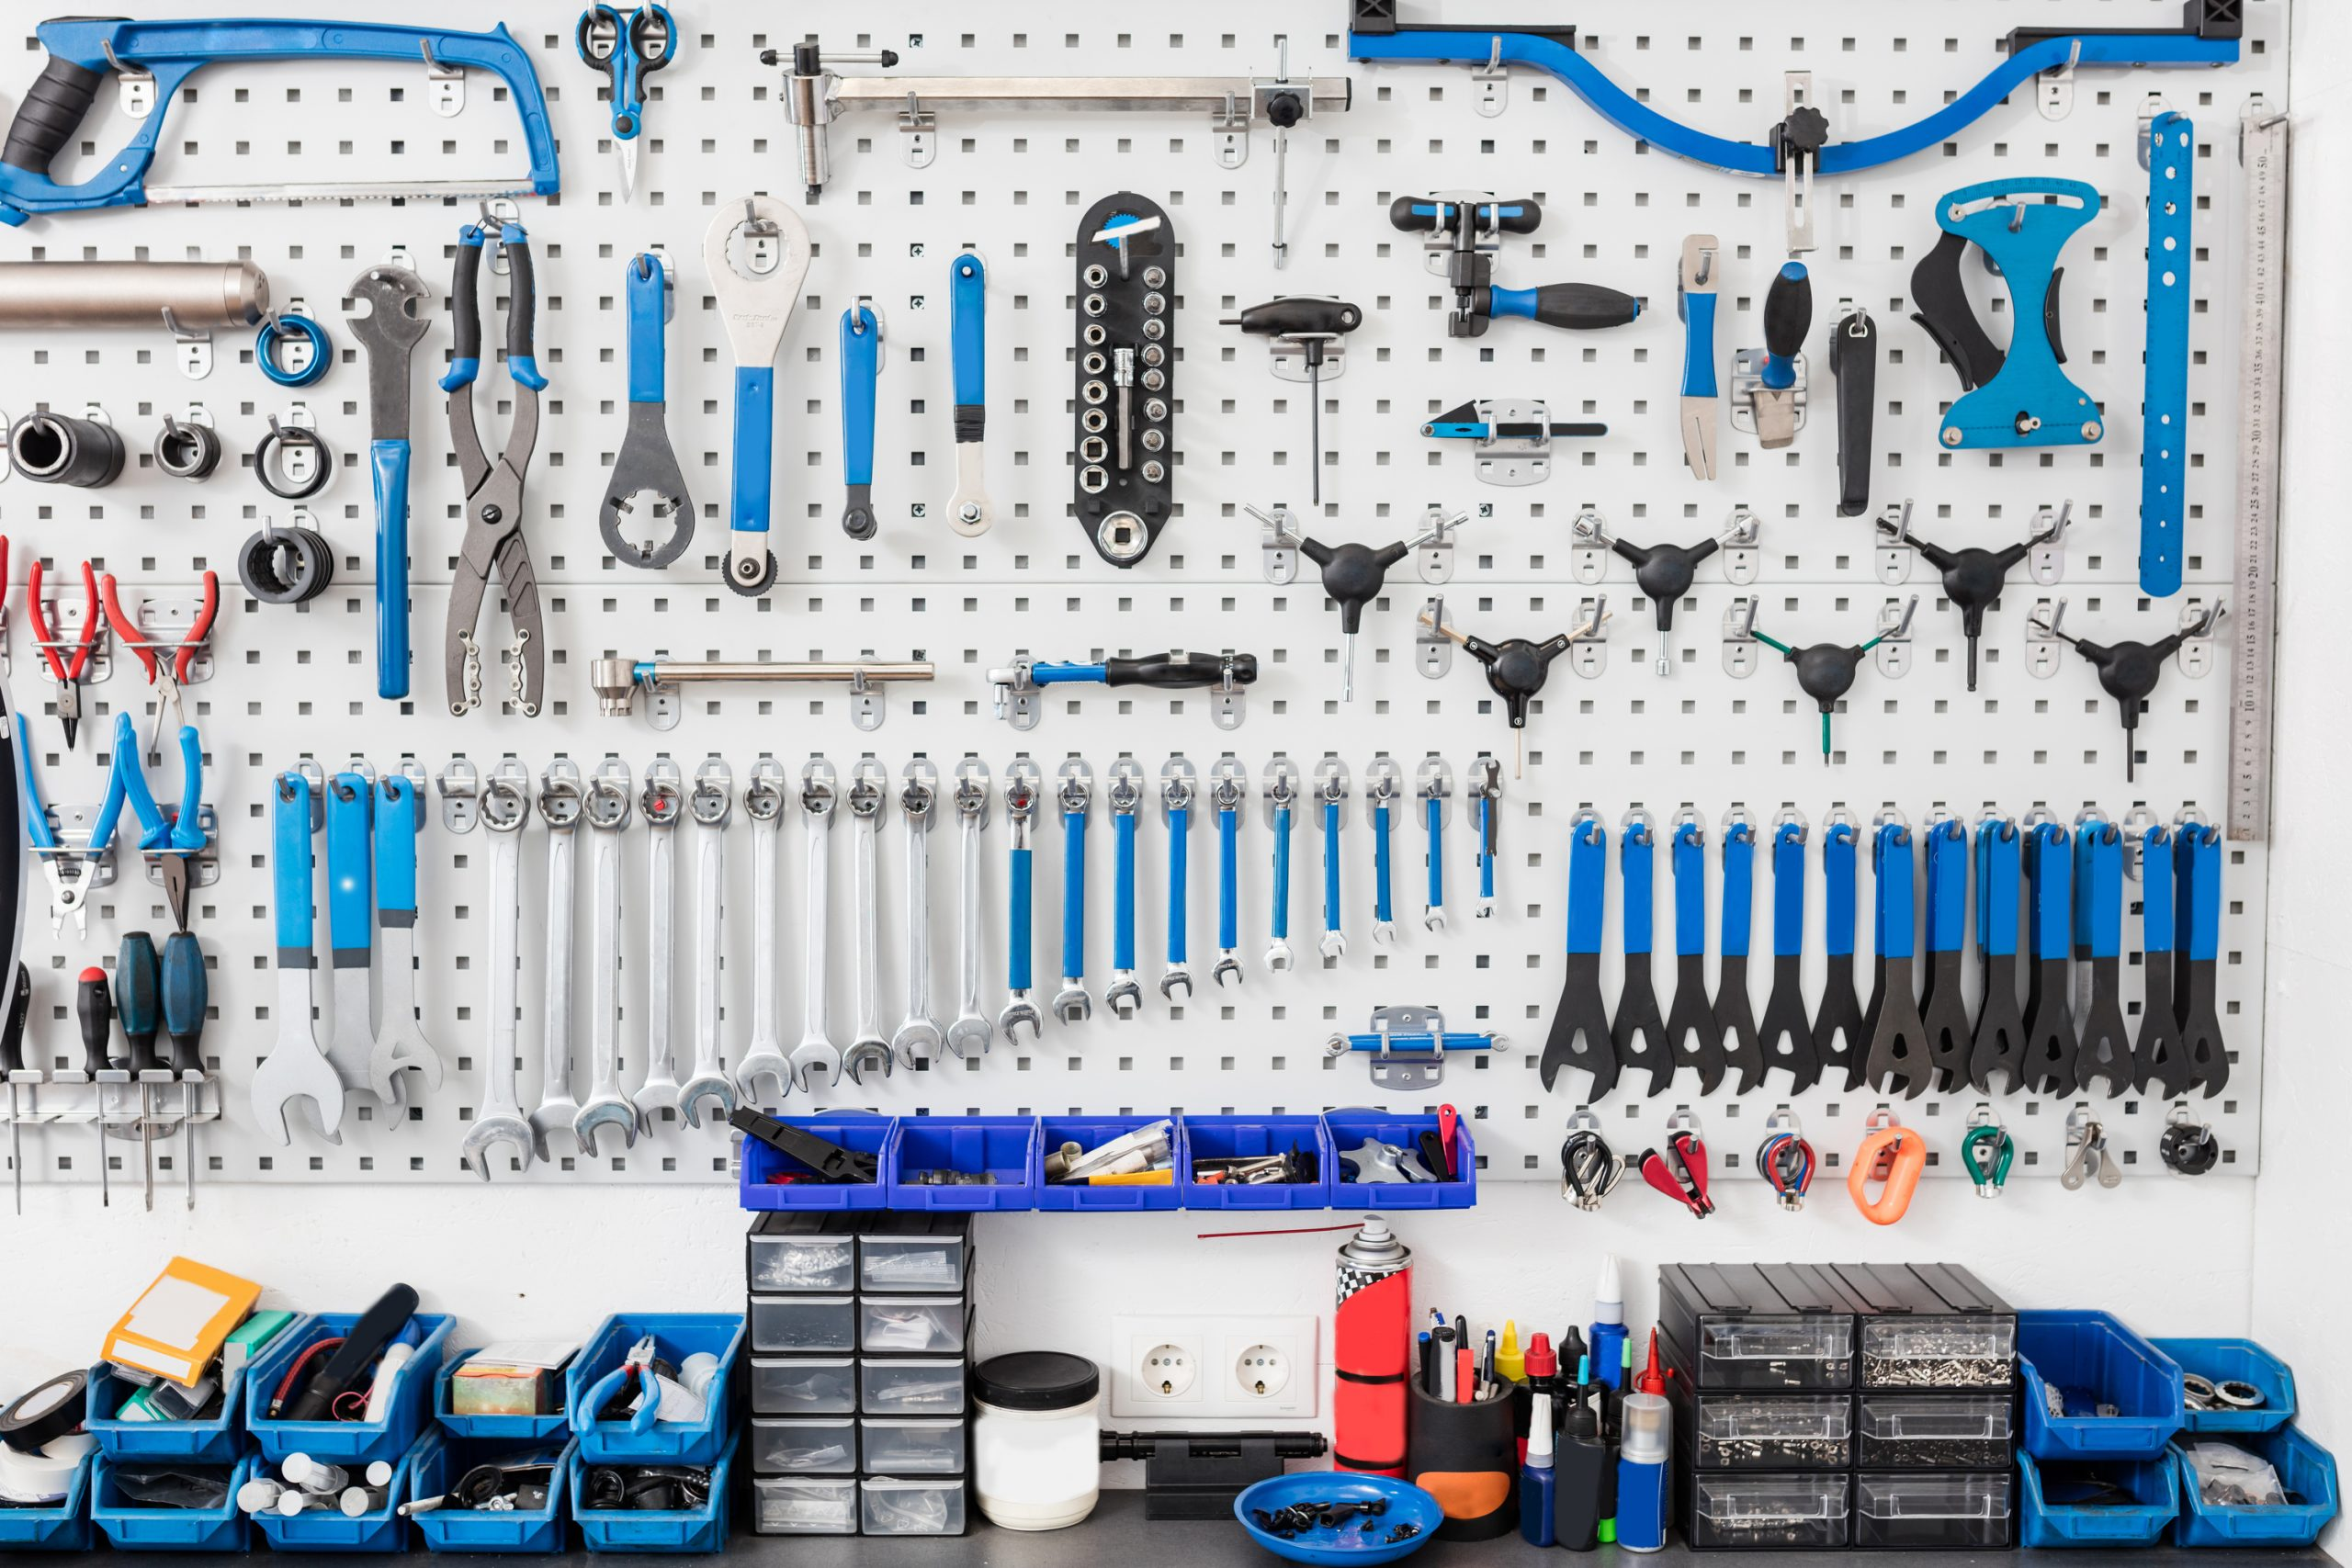 Garage makeovers don't have to be huge. This pegboard wall puts tool and such in sight and reach while keeping everything organized.